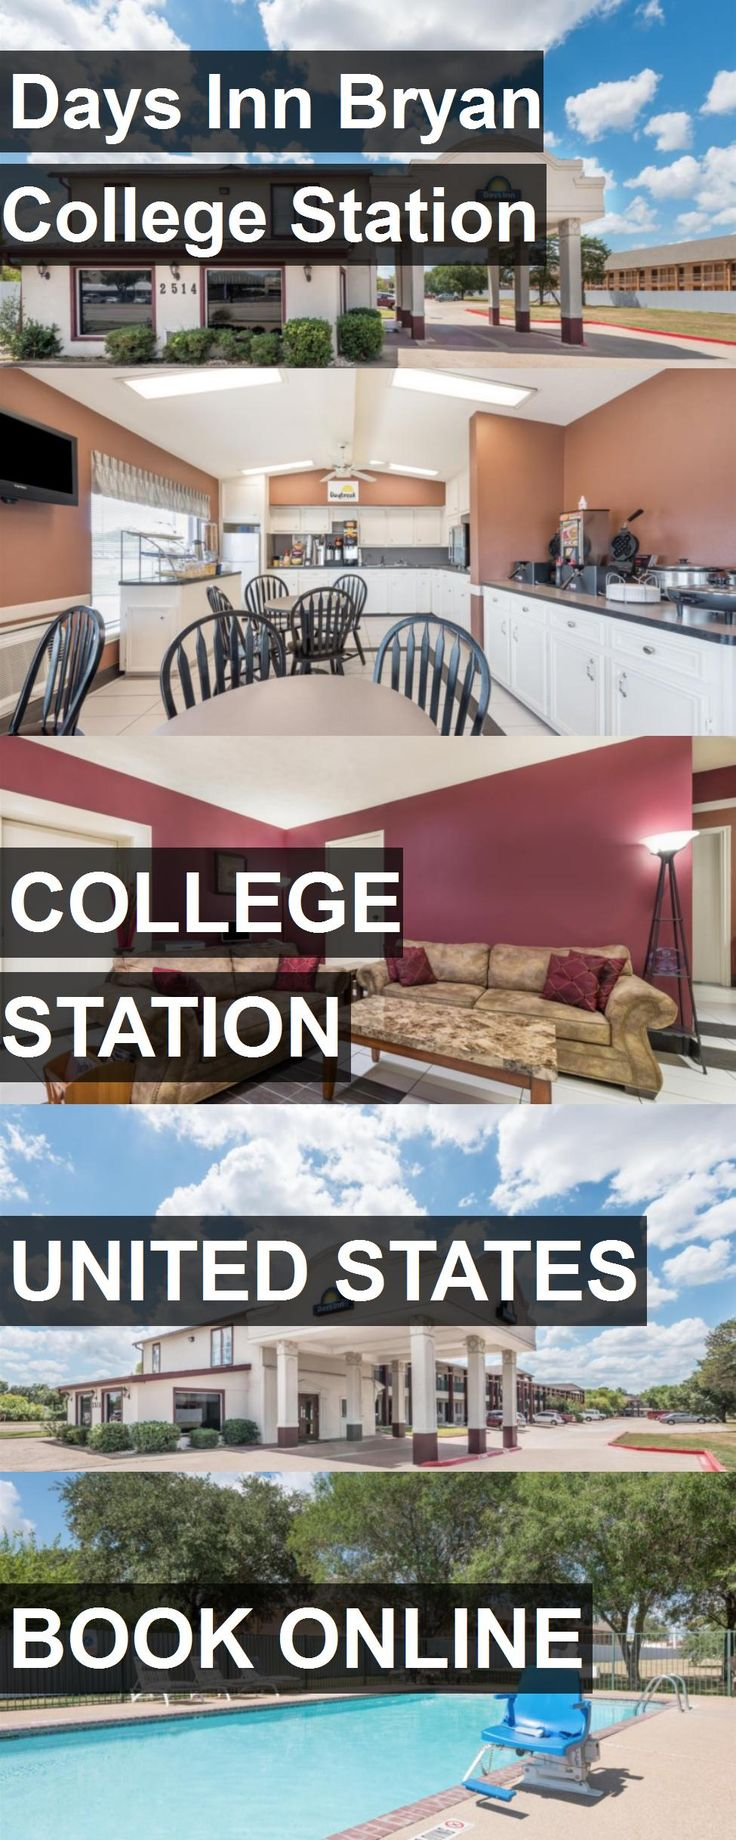 Hotel Days Inn Bryan College Station in College Station, United States. For more information, photos, reviews and best prices please follow the link. #UnitedStates #CollegeStation #travel #vacation #hotel